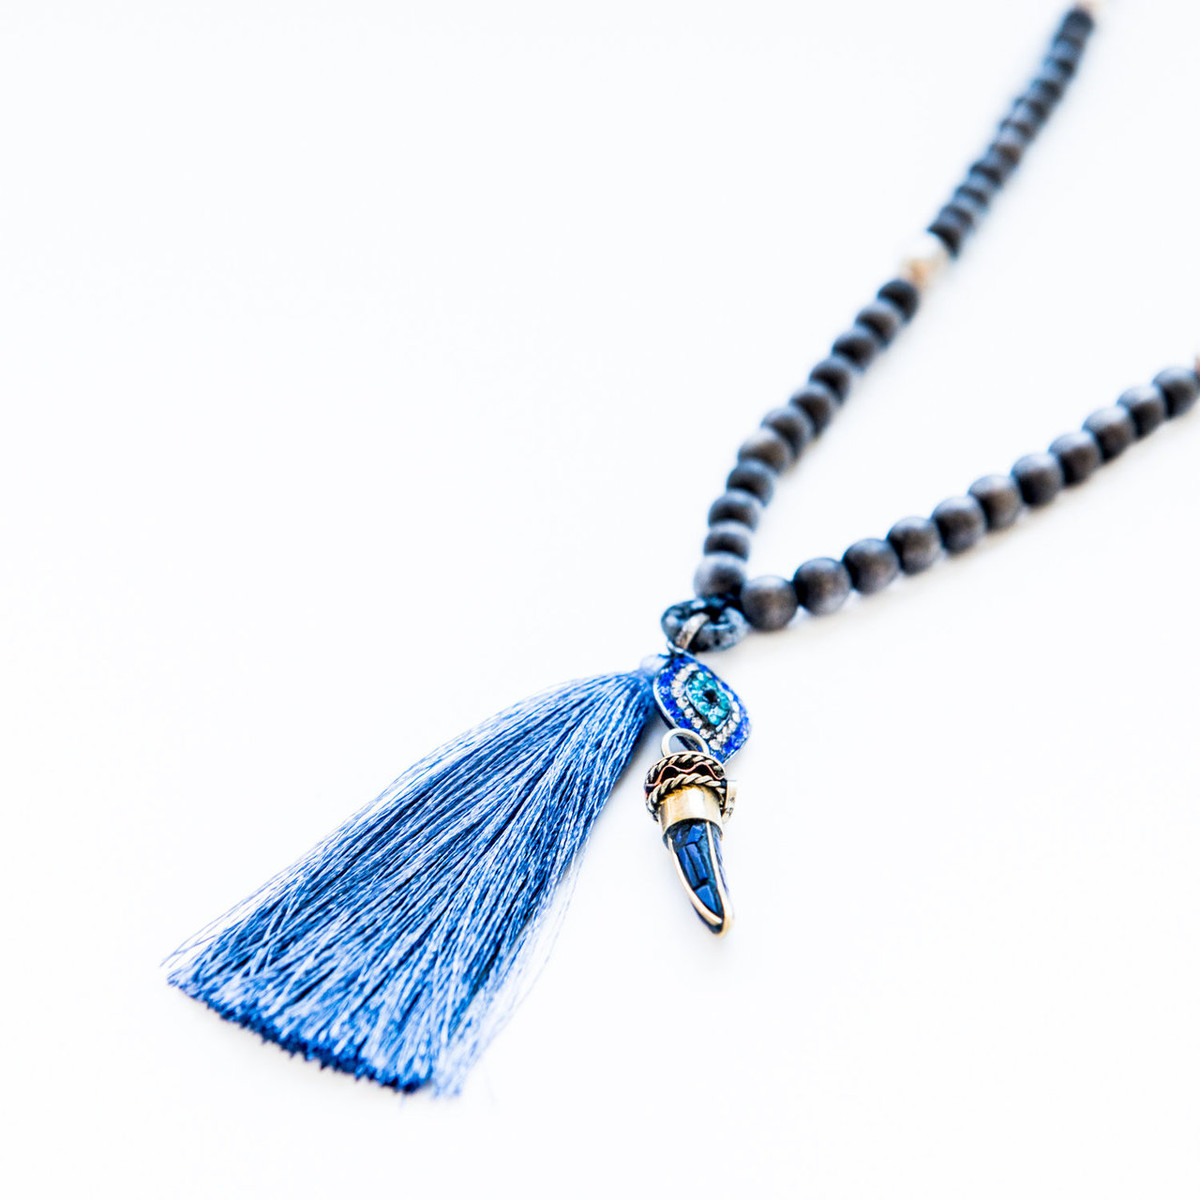 7Stitches Dark Steel Blue Mala with silver accents